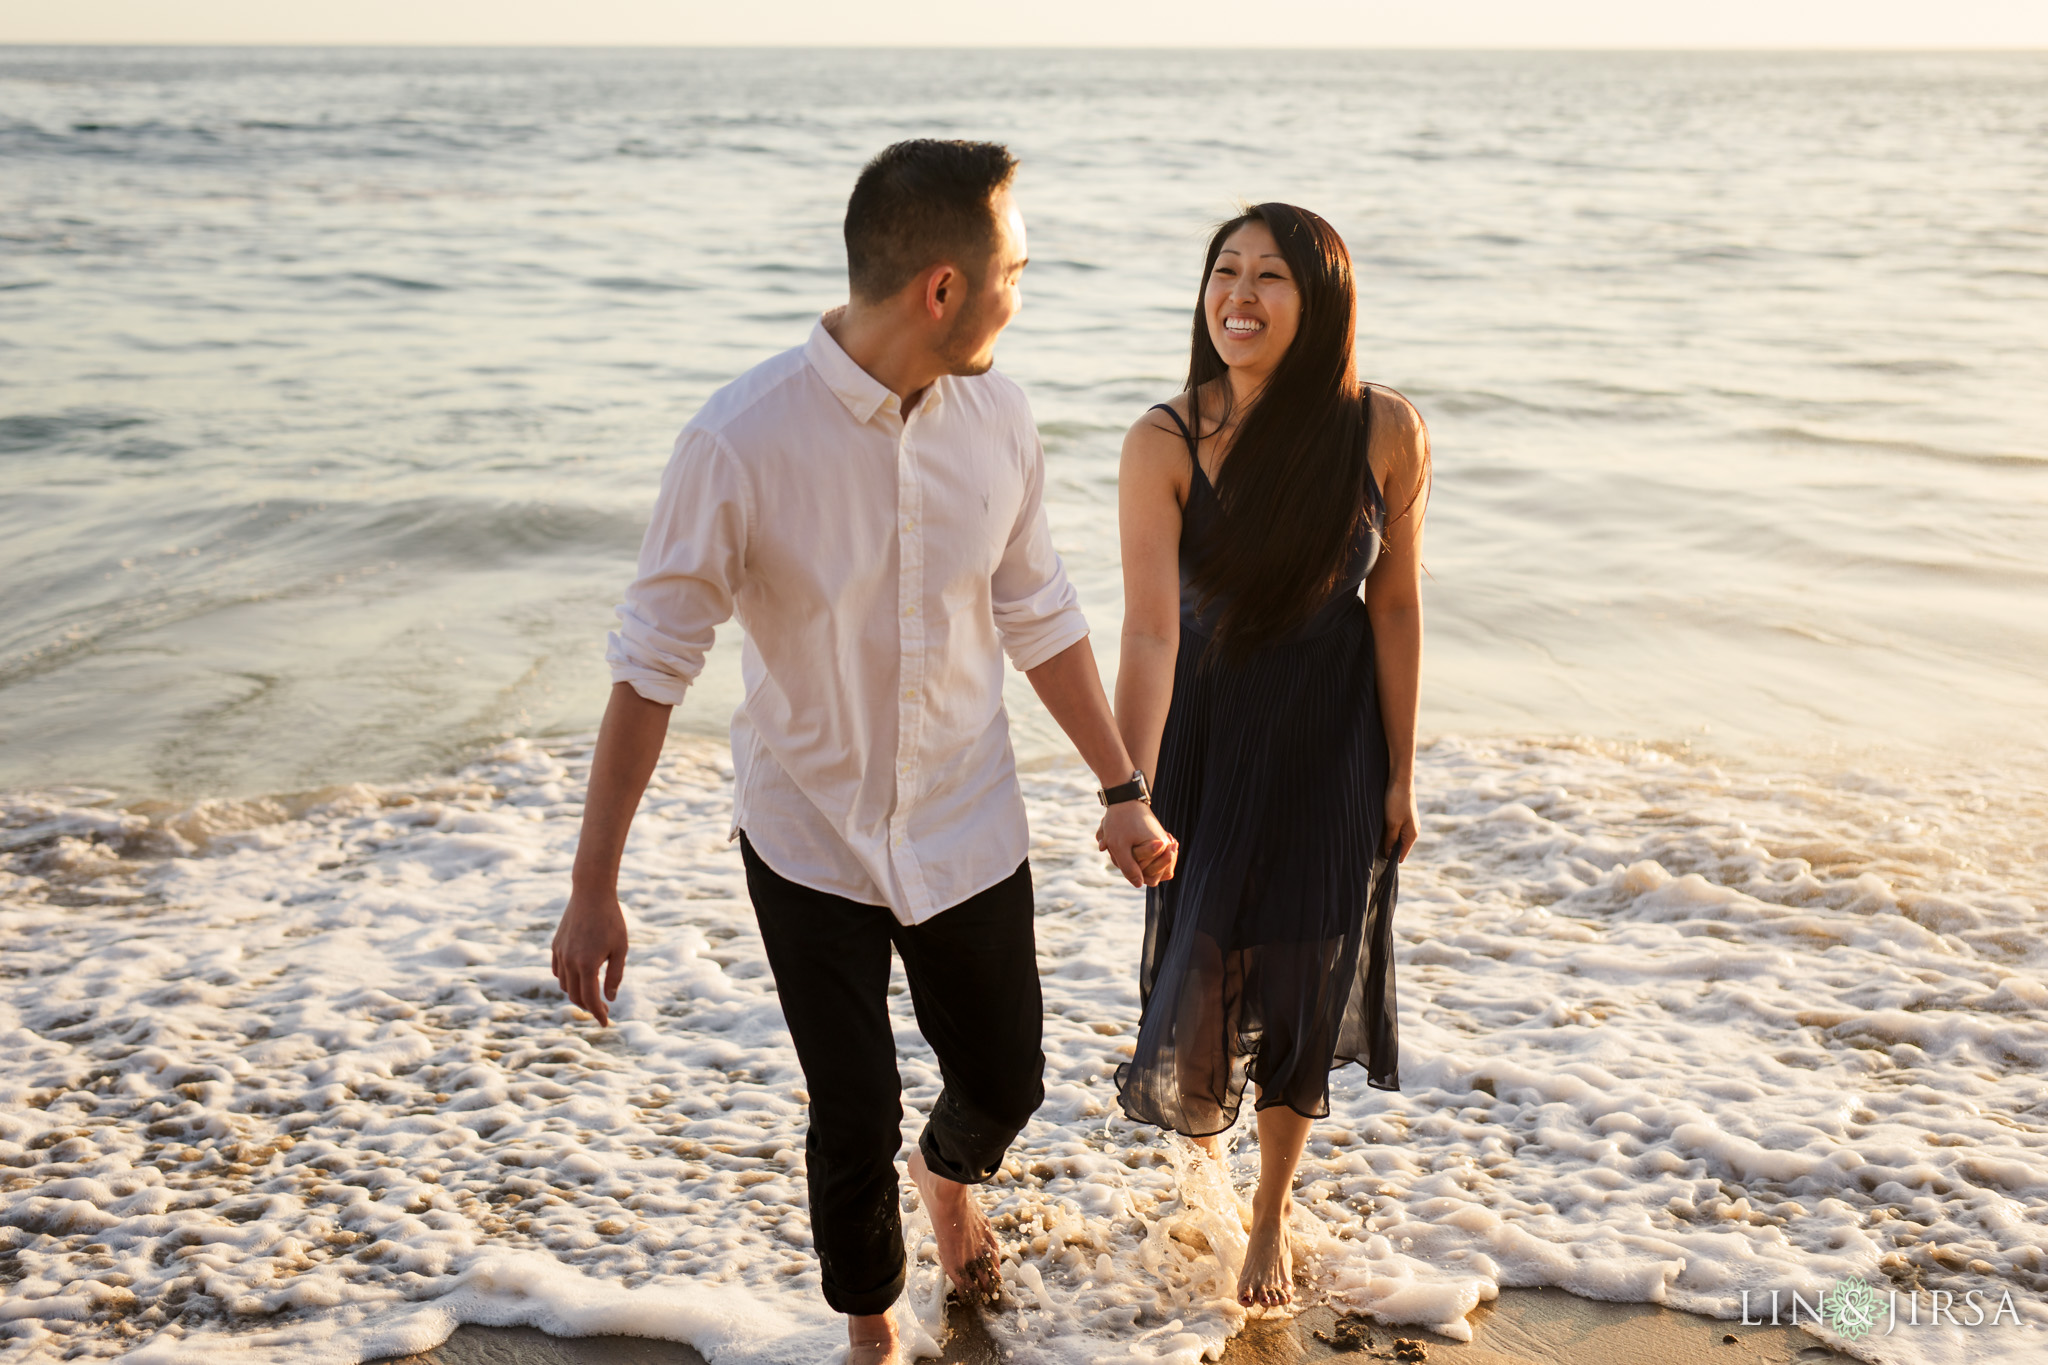 08 Heisler Beach Orange County Proposal Engagement Photography